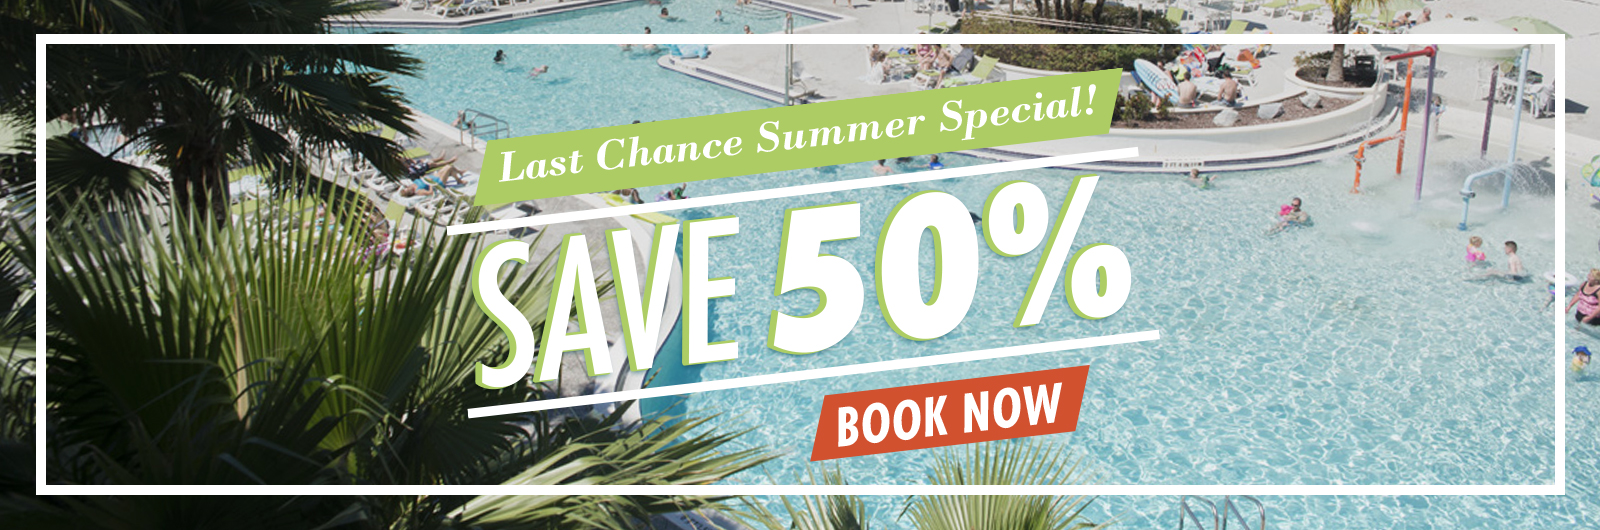 Last Chance for Summer Savings | Save 50%